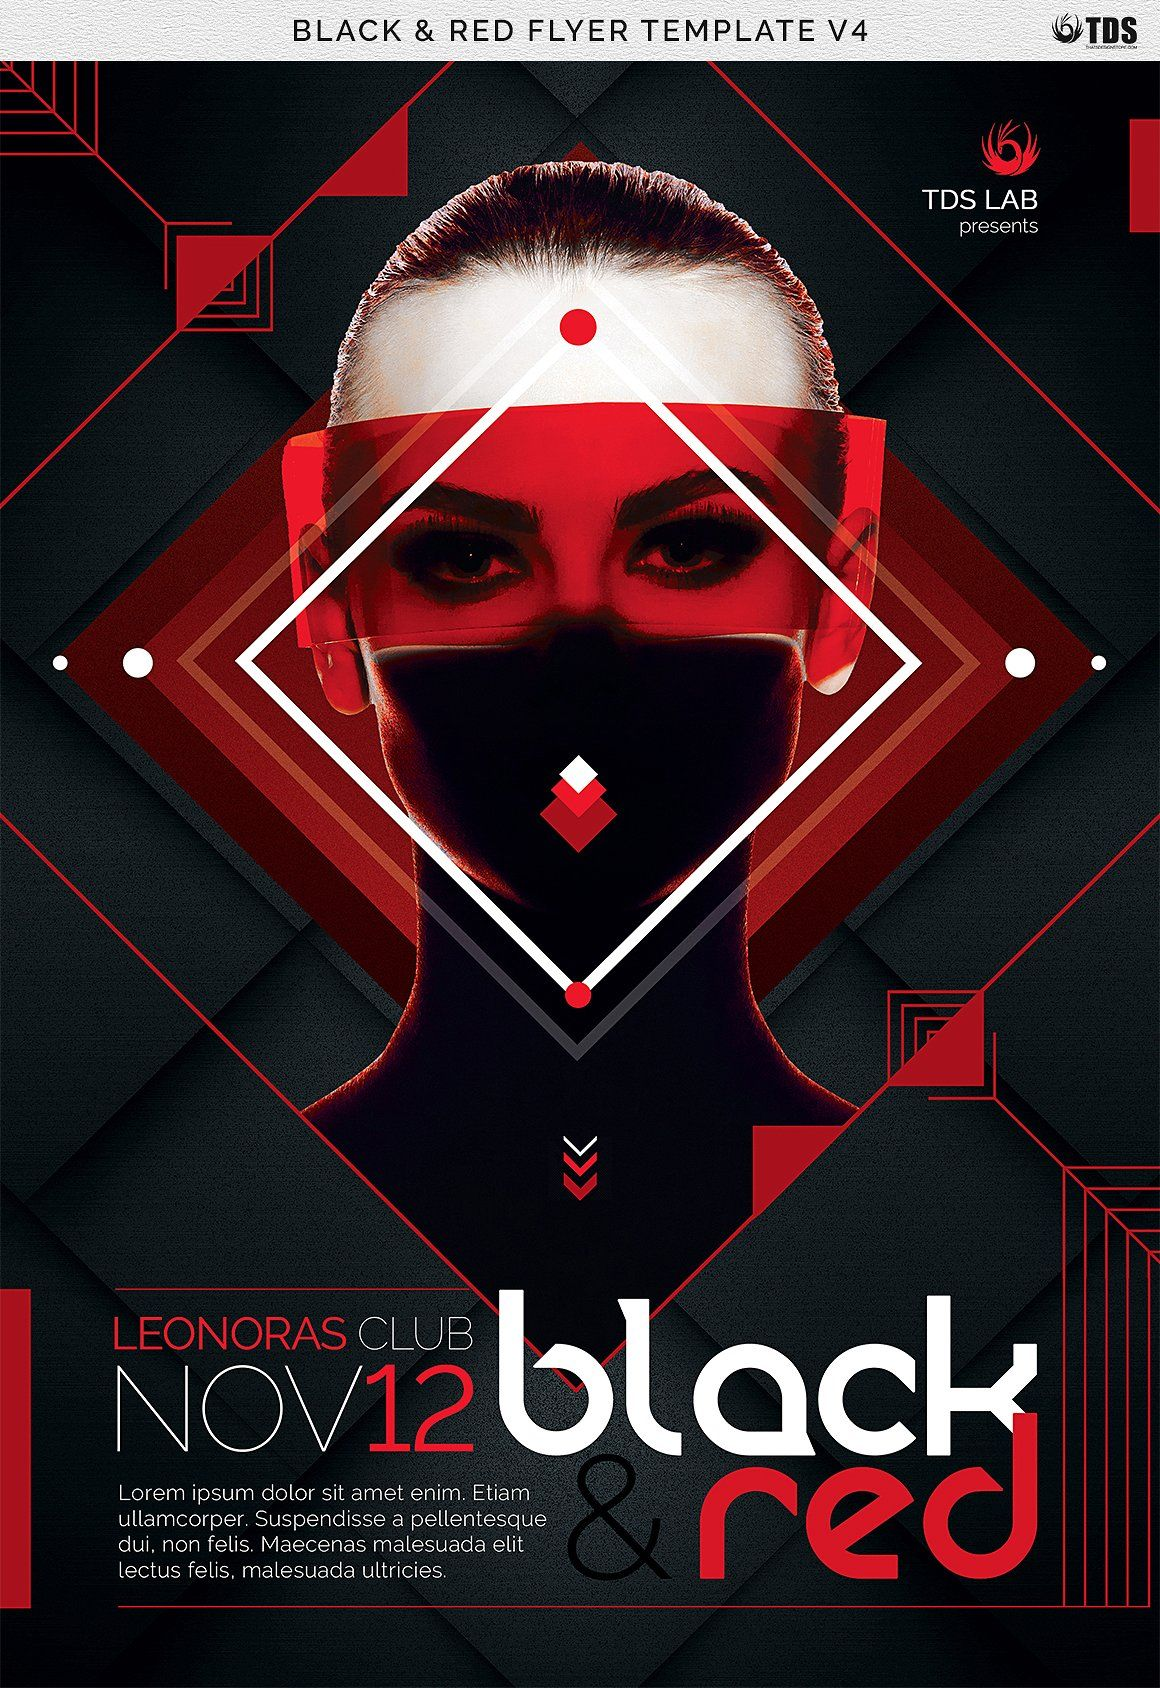 Black And Red Flyer Template V4 Black And Red Flyer Flyer Template